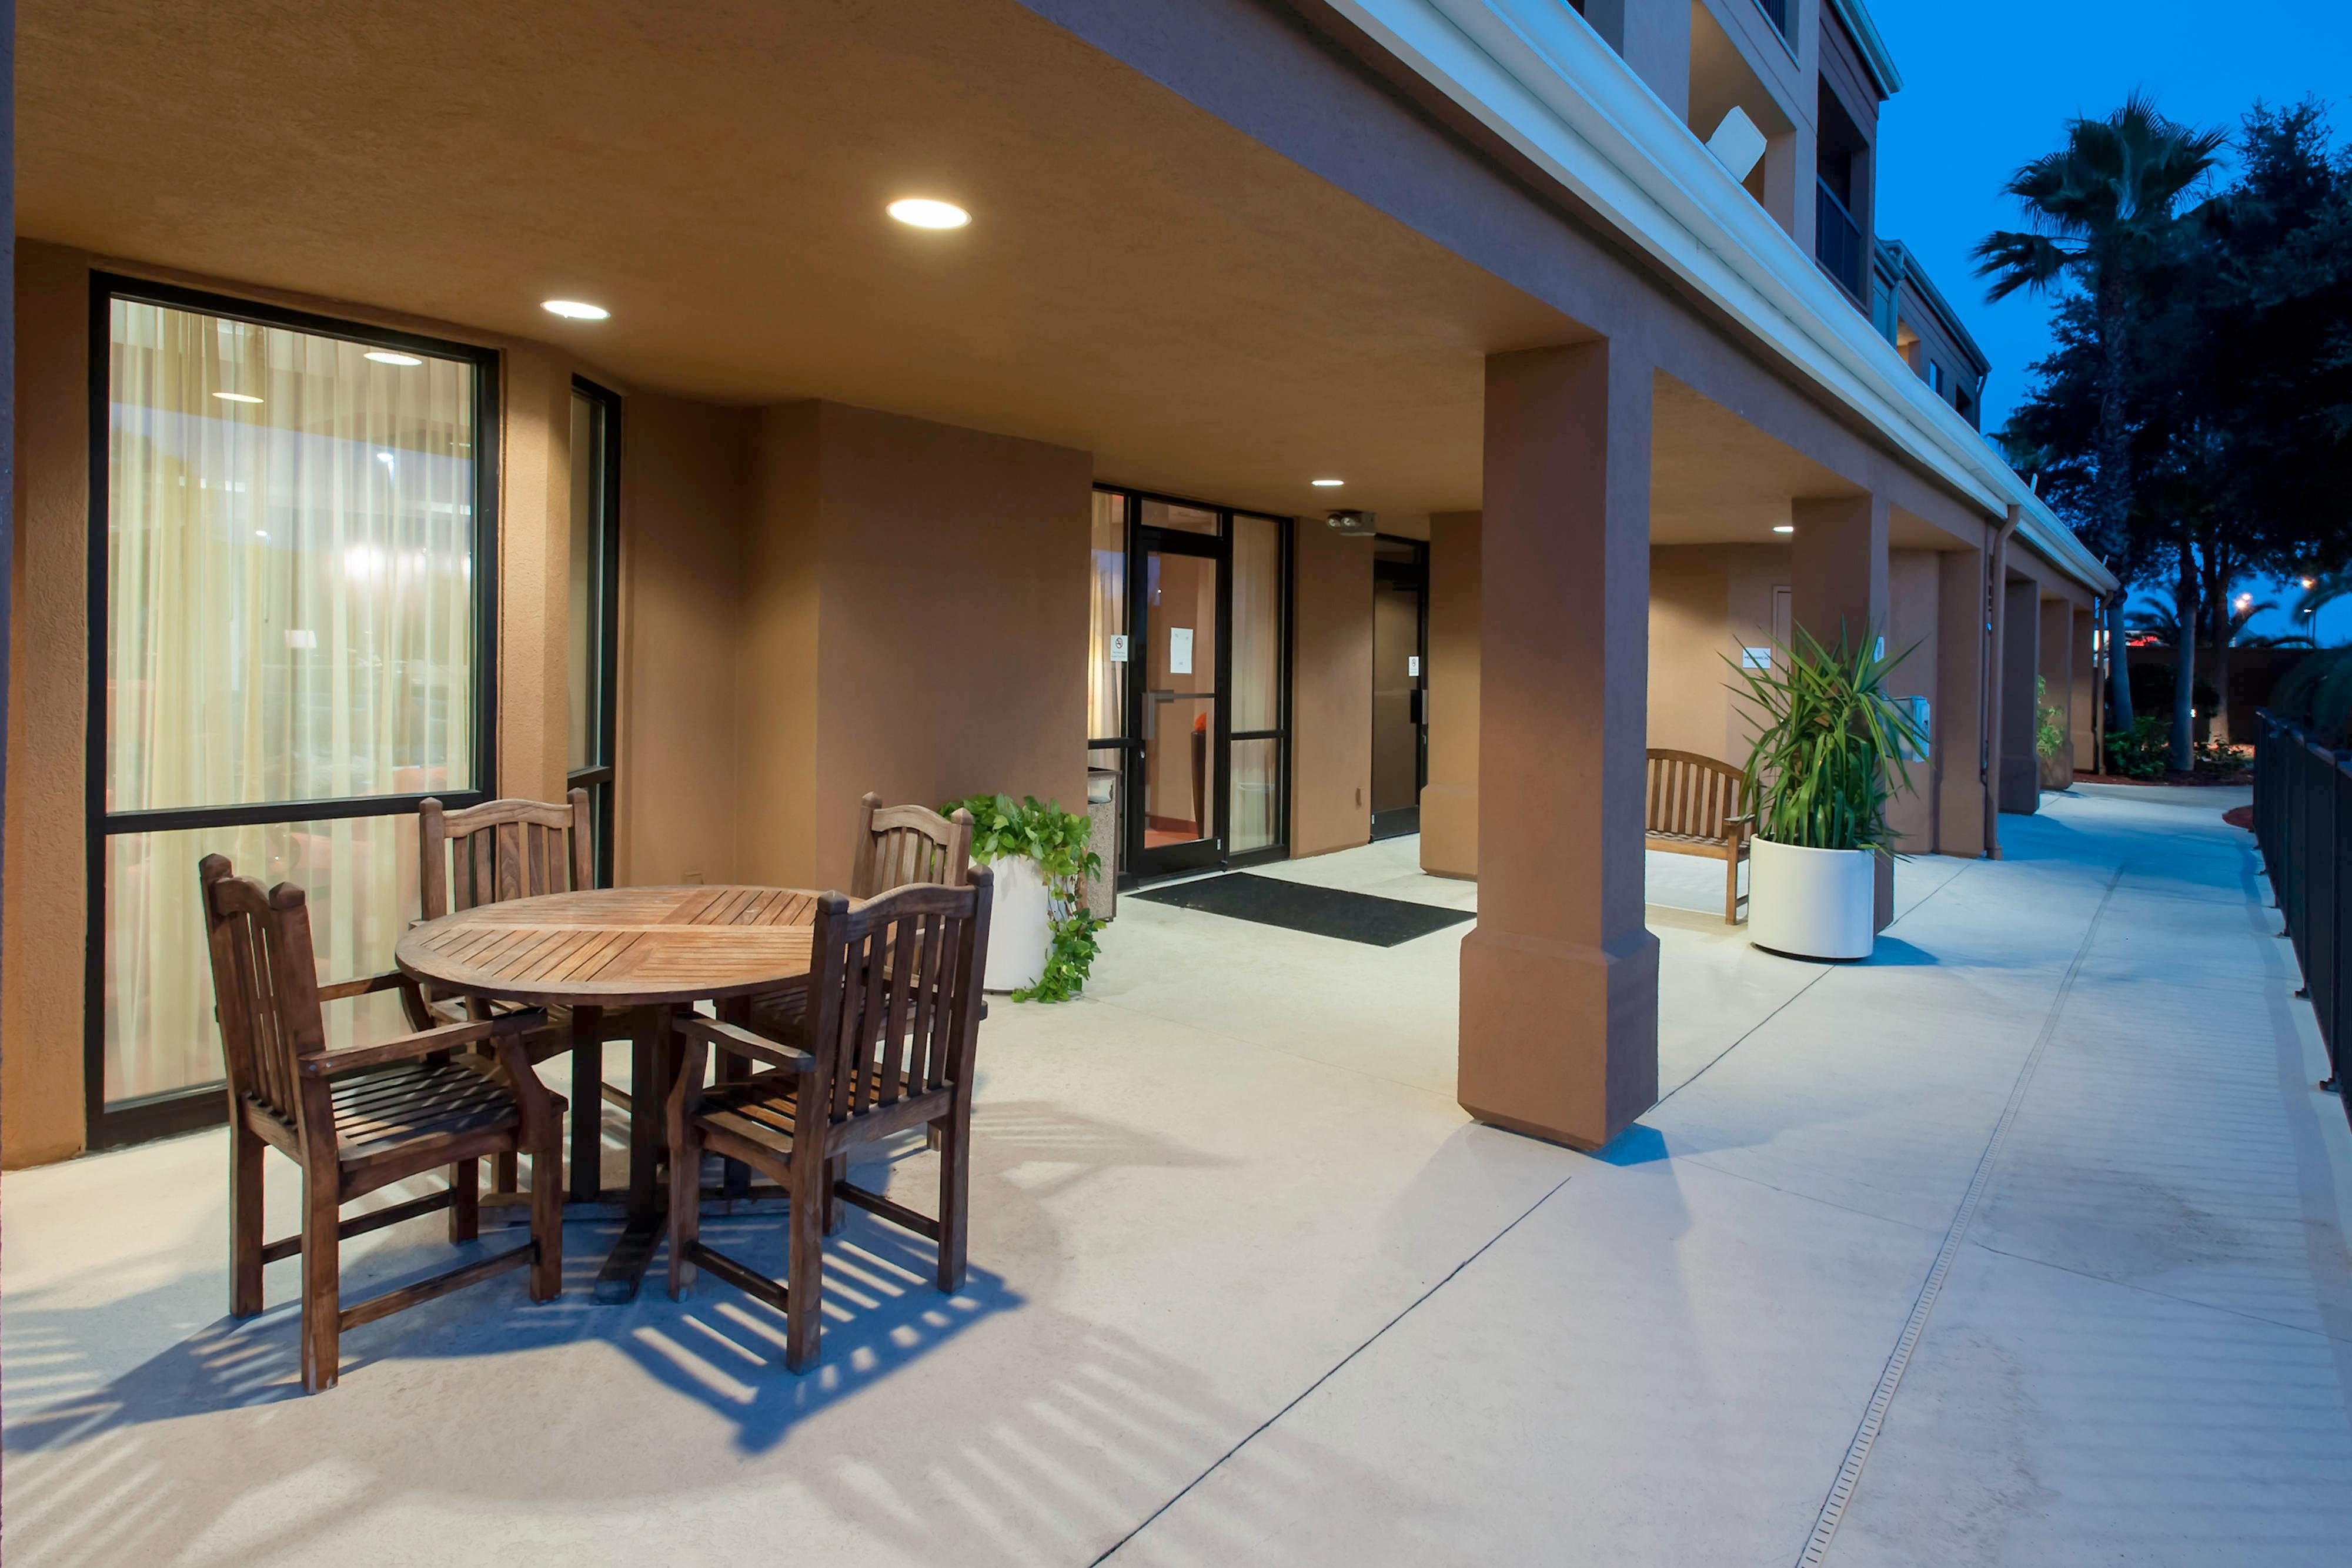 Hotel Terrace - Lakeland FL hotels